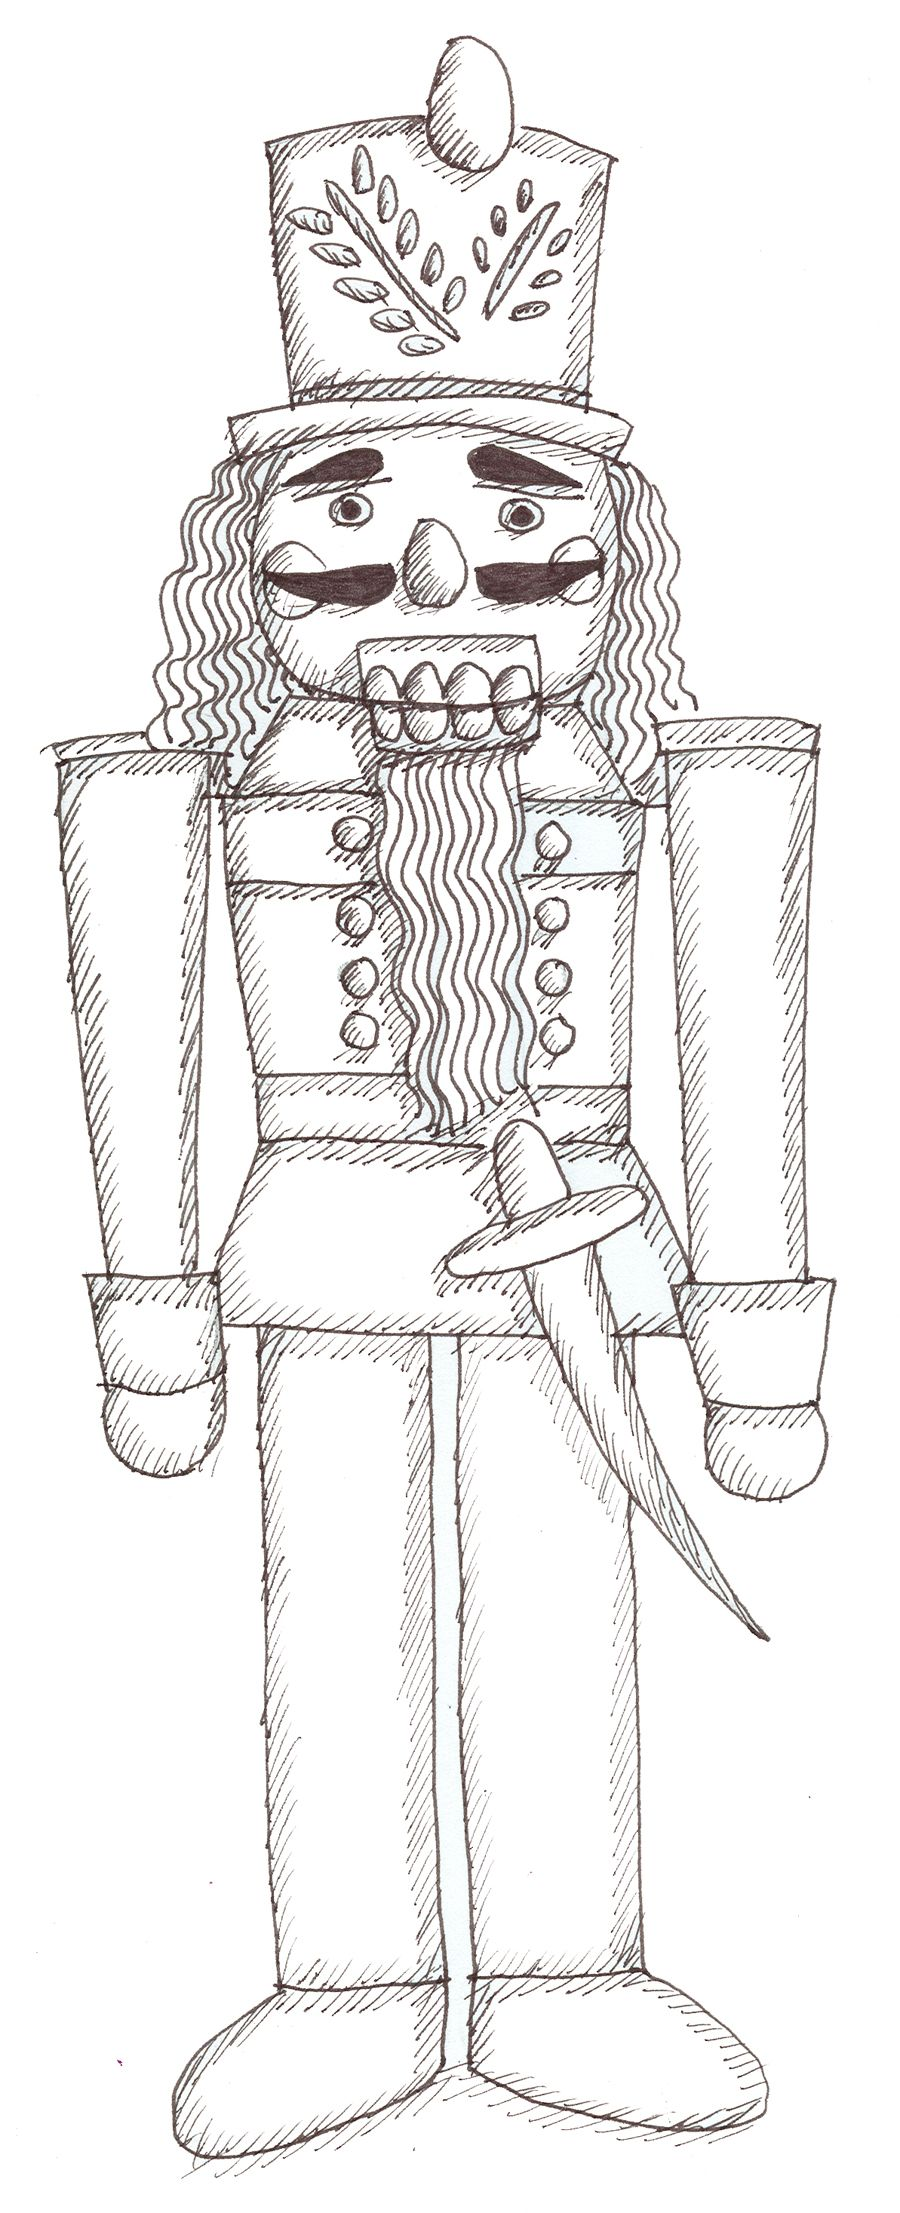 Nutcracker Coloring Sheets The Nutcracker Color It In And Put It On Your Tree Or Give It To Christmas Coloring Pages Coloring Books Coloring Pages